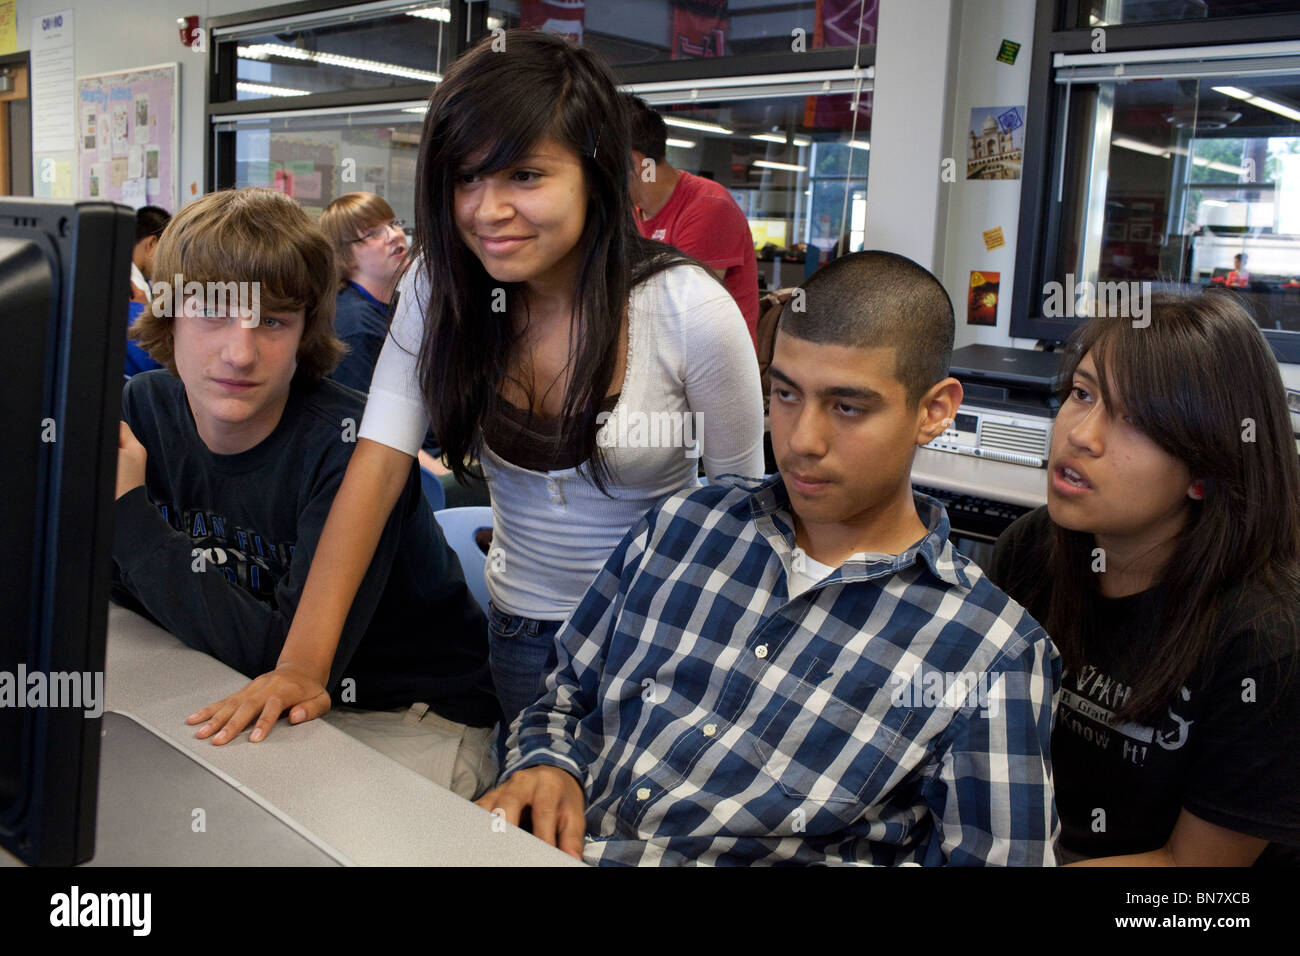 Male and female high school students look at computer monitor during class. Stock Photo